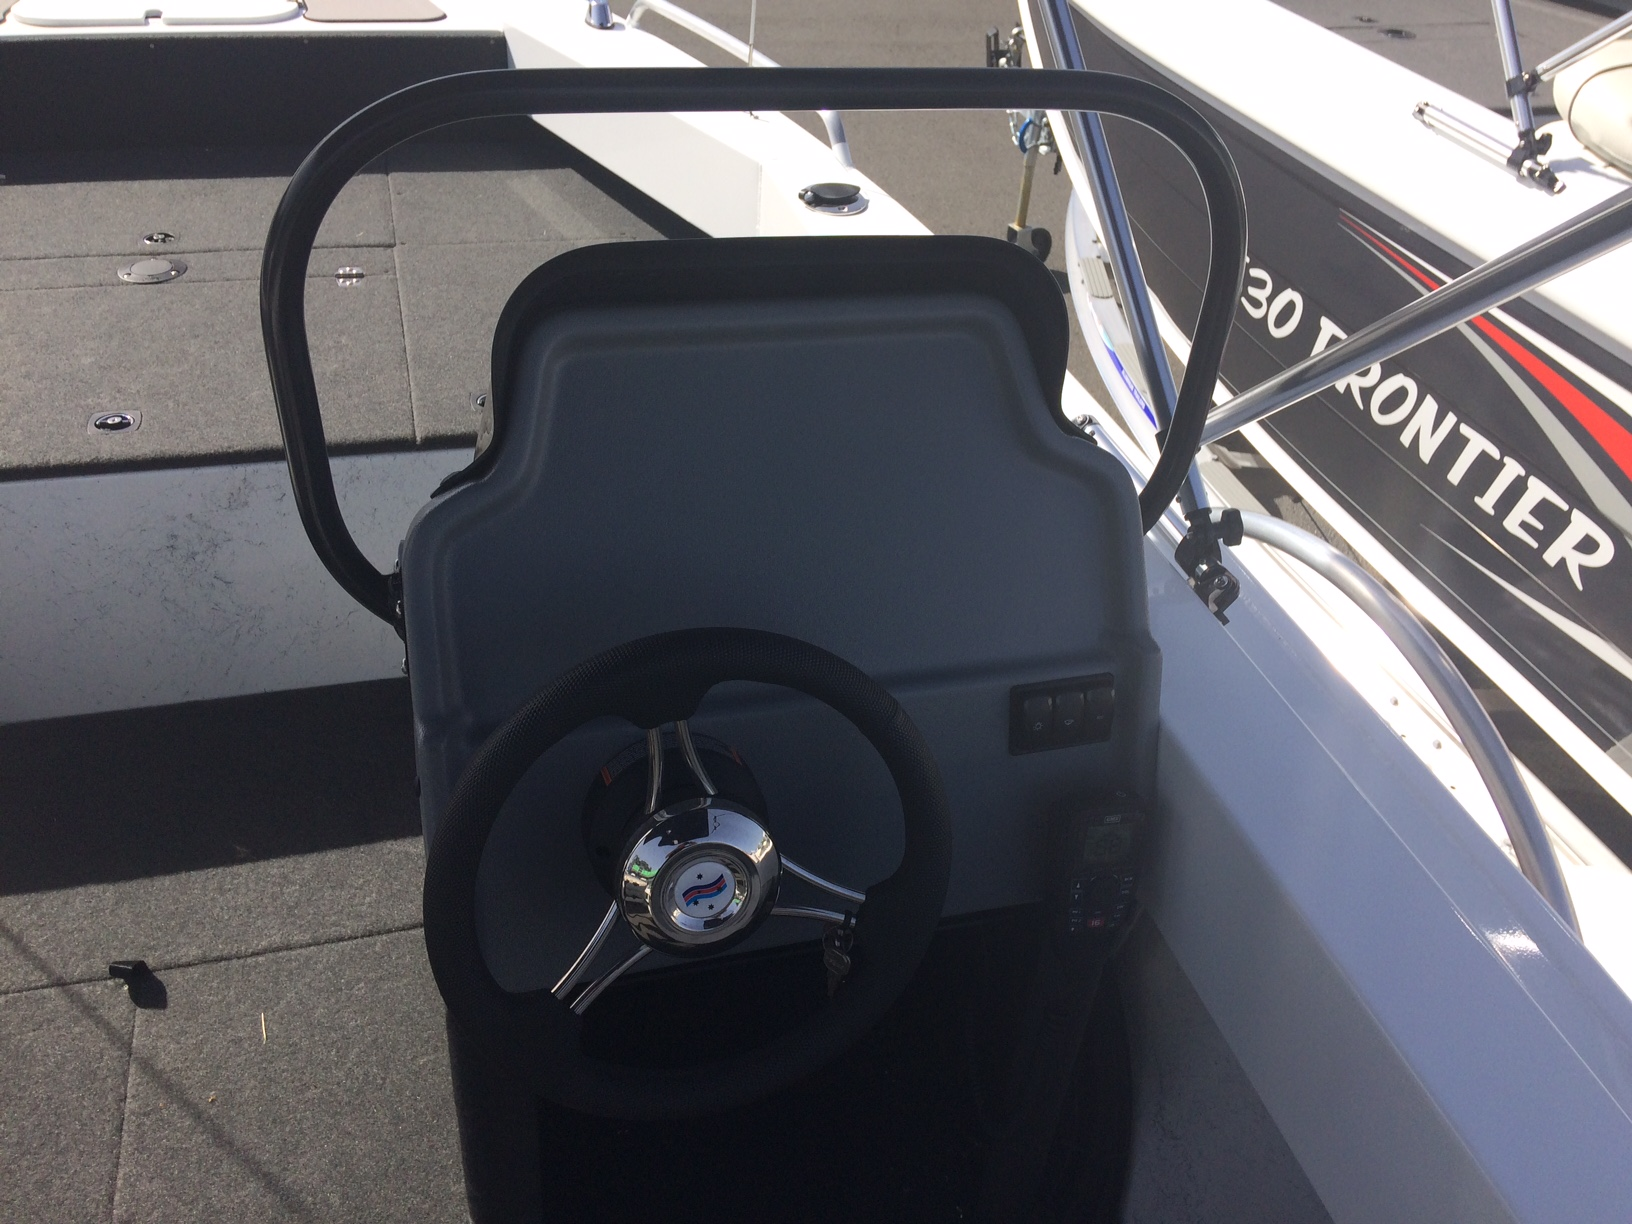 New 2019 Quintrex 510 Frontier Sportsfisher Side Console